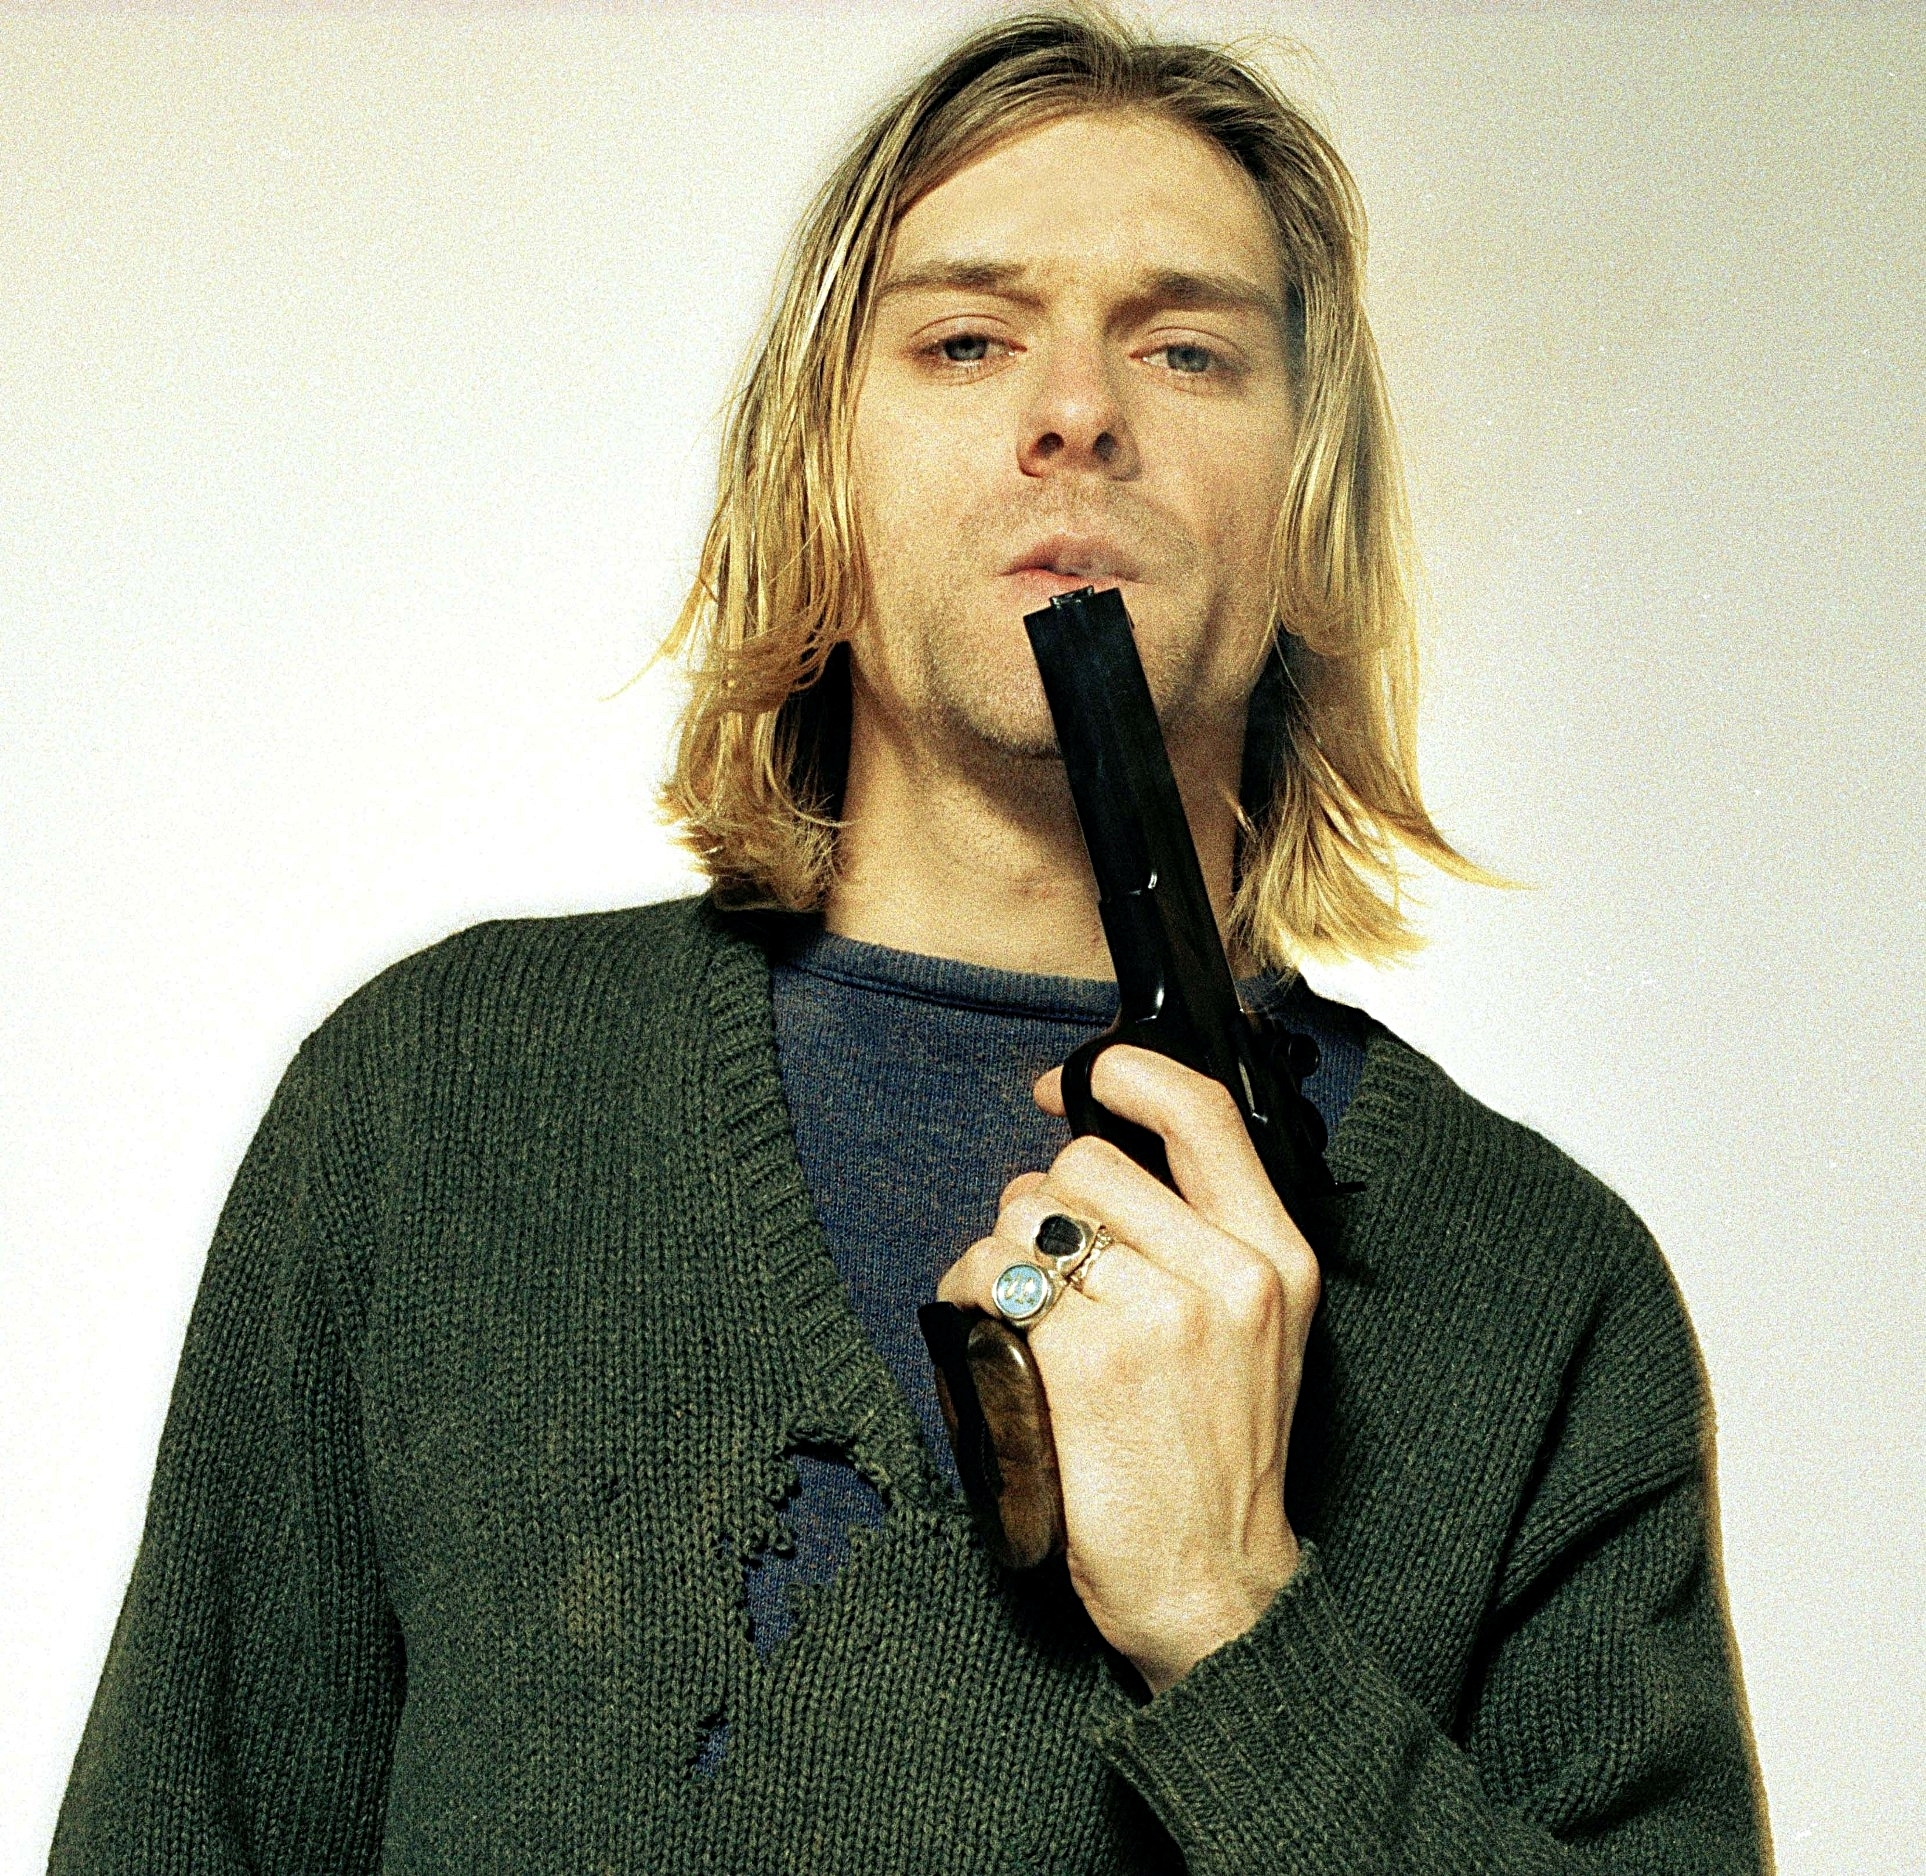 an overview of the events faced by kurt cobain when he was diagnosed with bipolar disorder